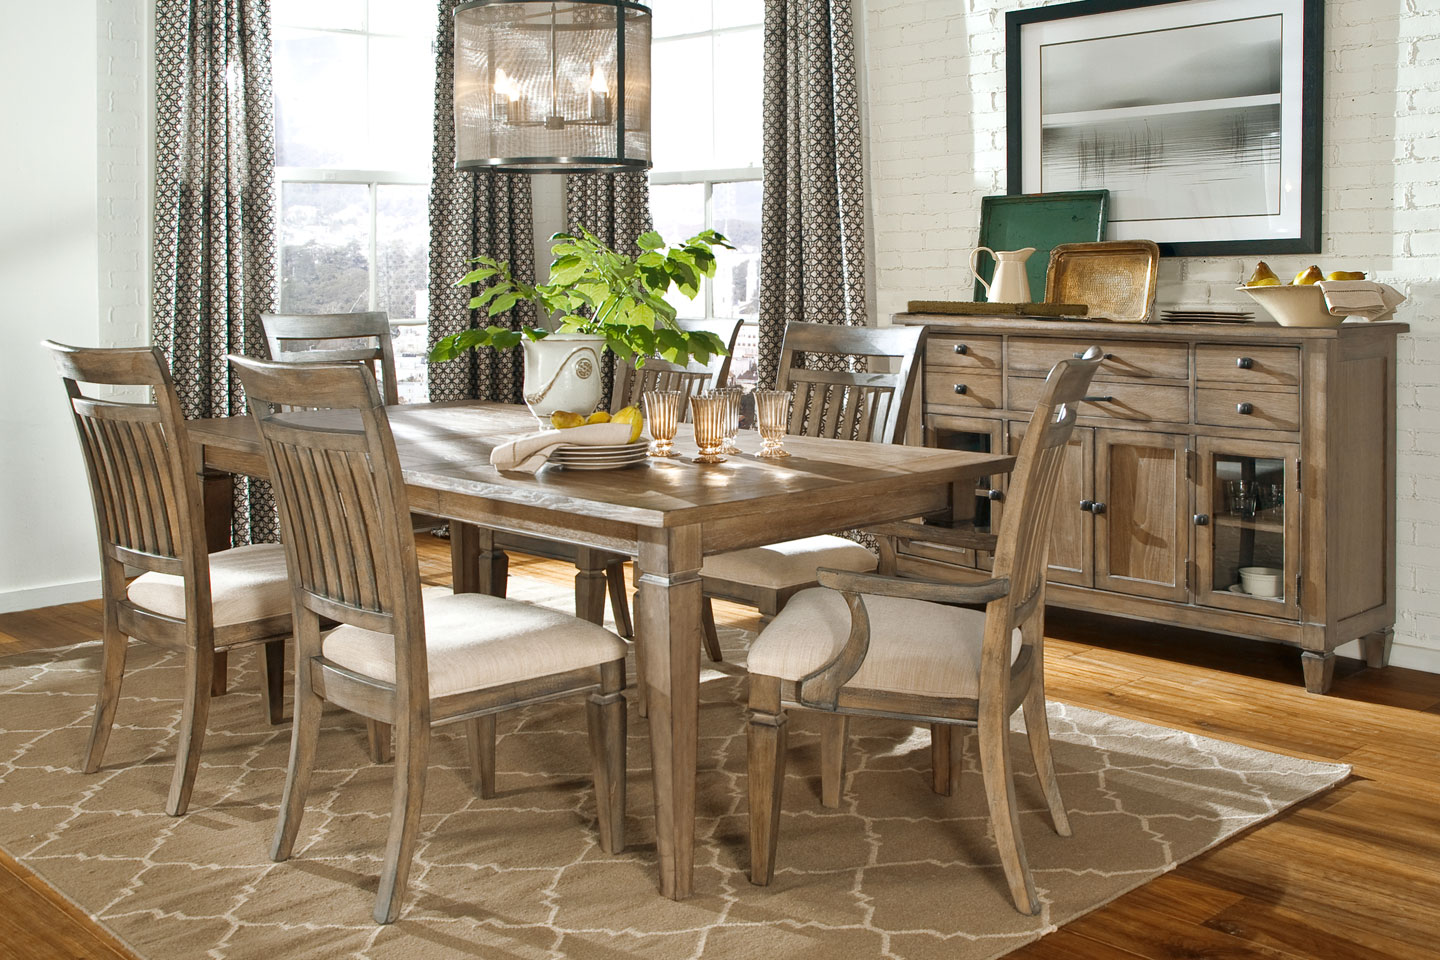 Dining gt; Fine Dining Furniture gt; Gavin Rustic Formal Dining Room Set